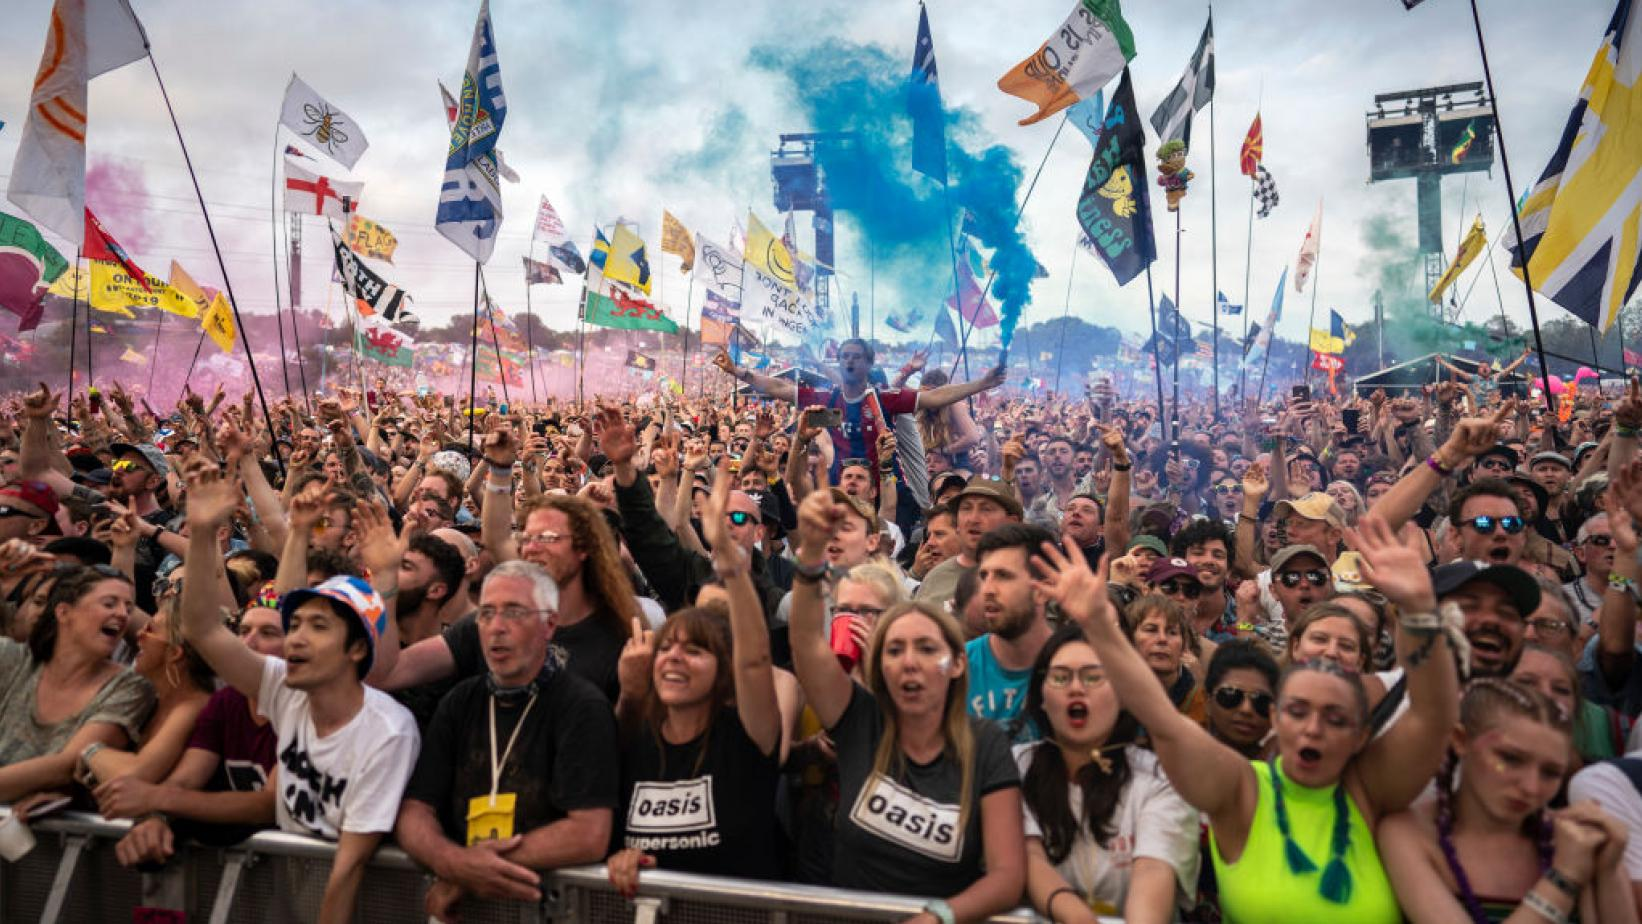 Crowd shot at Glastonbury Festival 2019